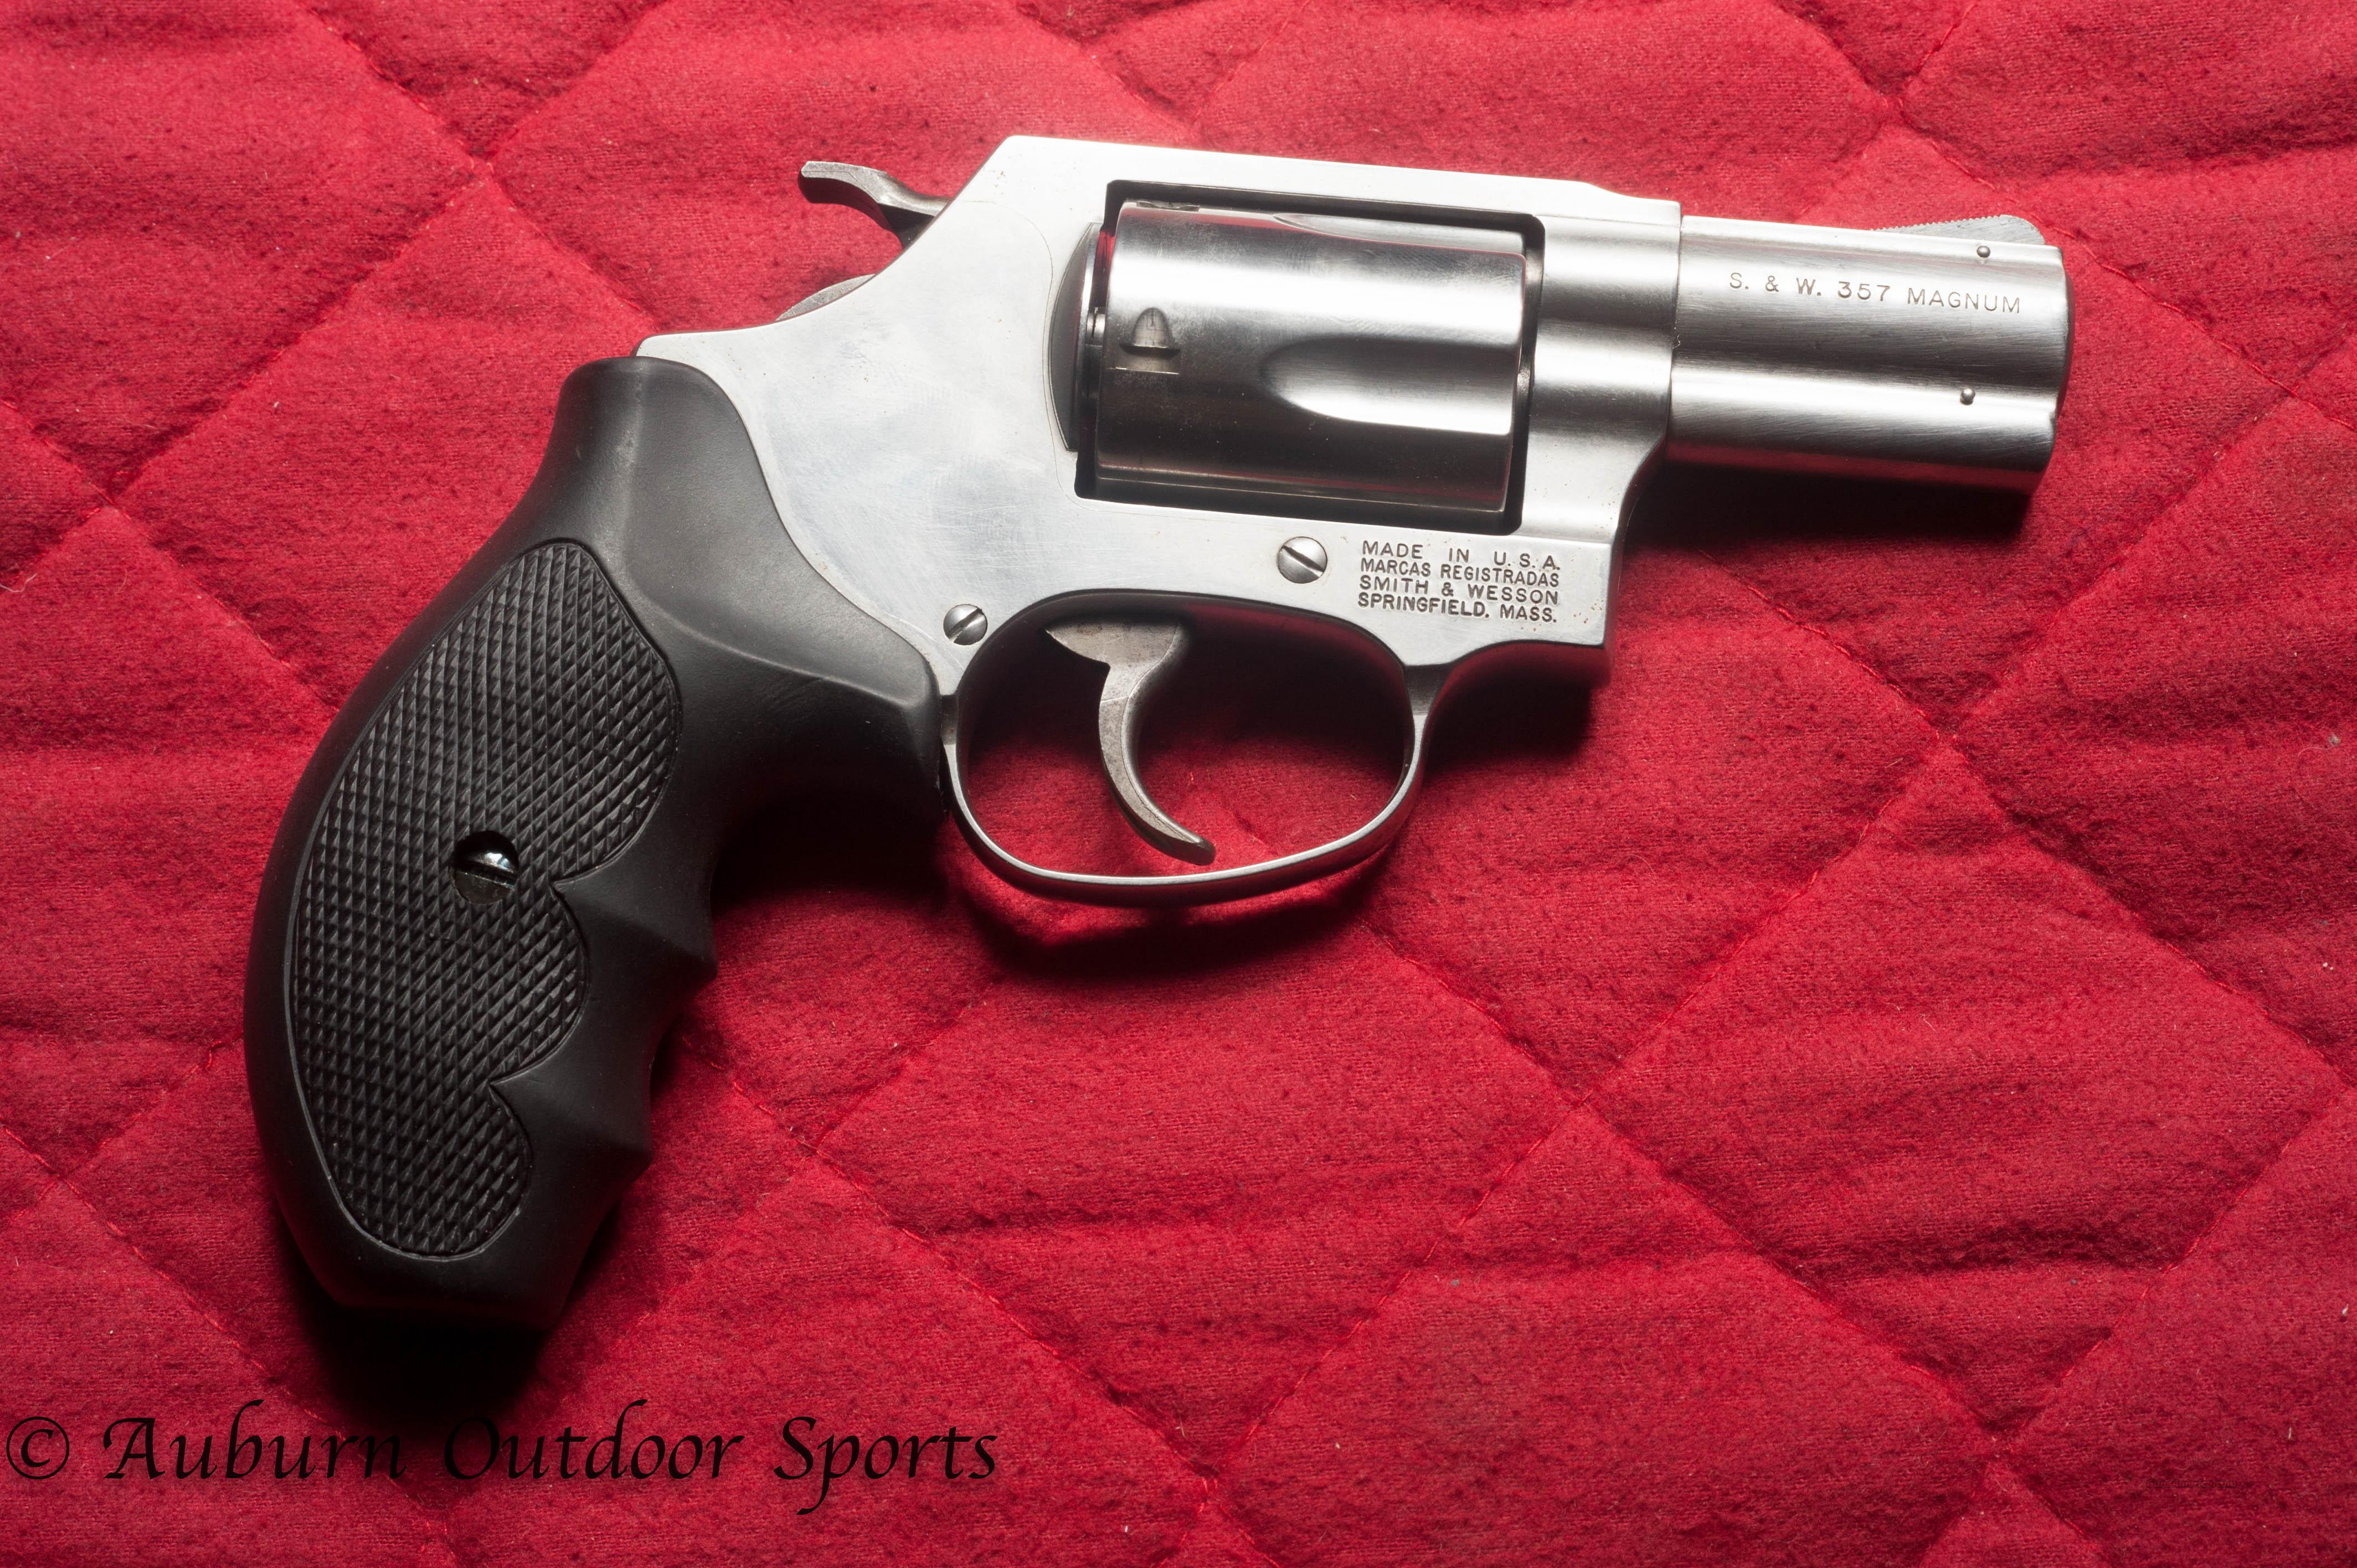 Smith & Wesson 60-9 .357 magnum  Guns > Pistols > Smith & Wesson Revolvers > Pocket Pistols